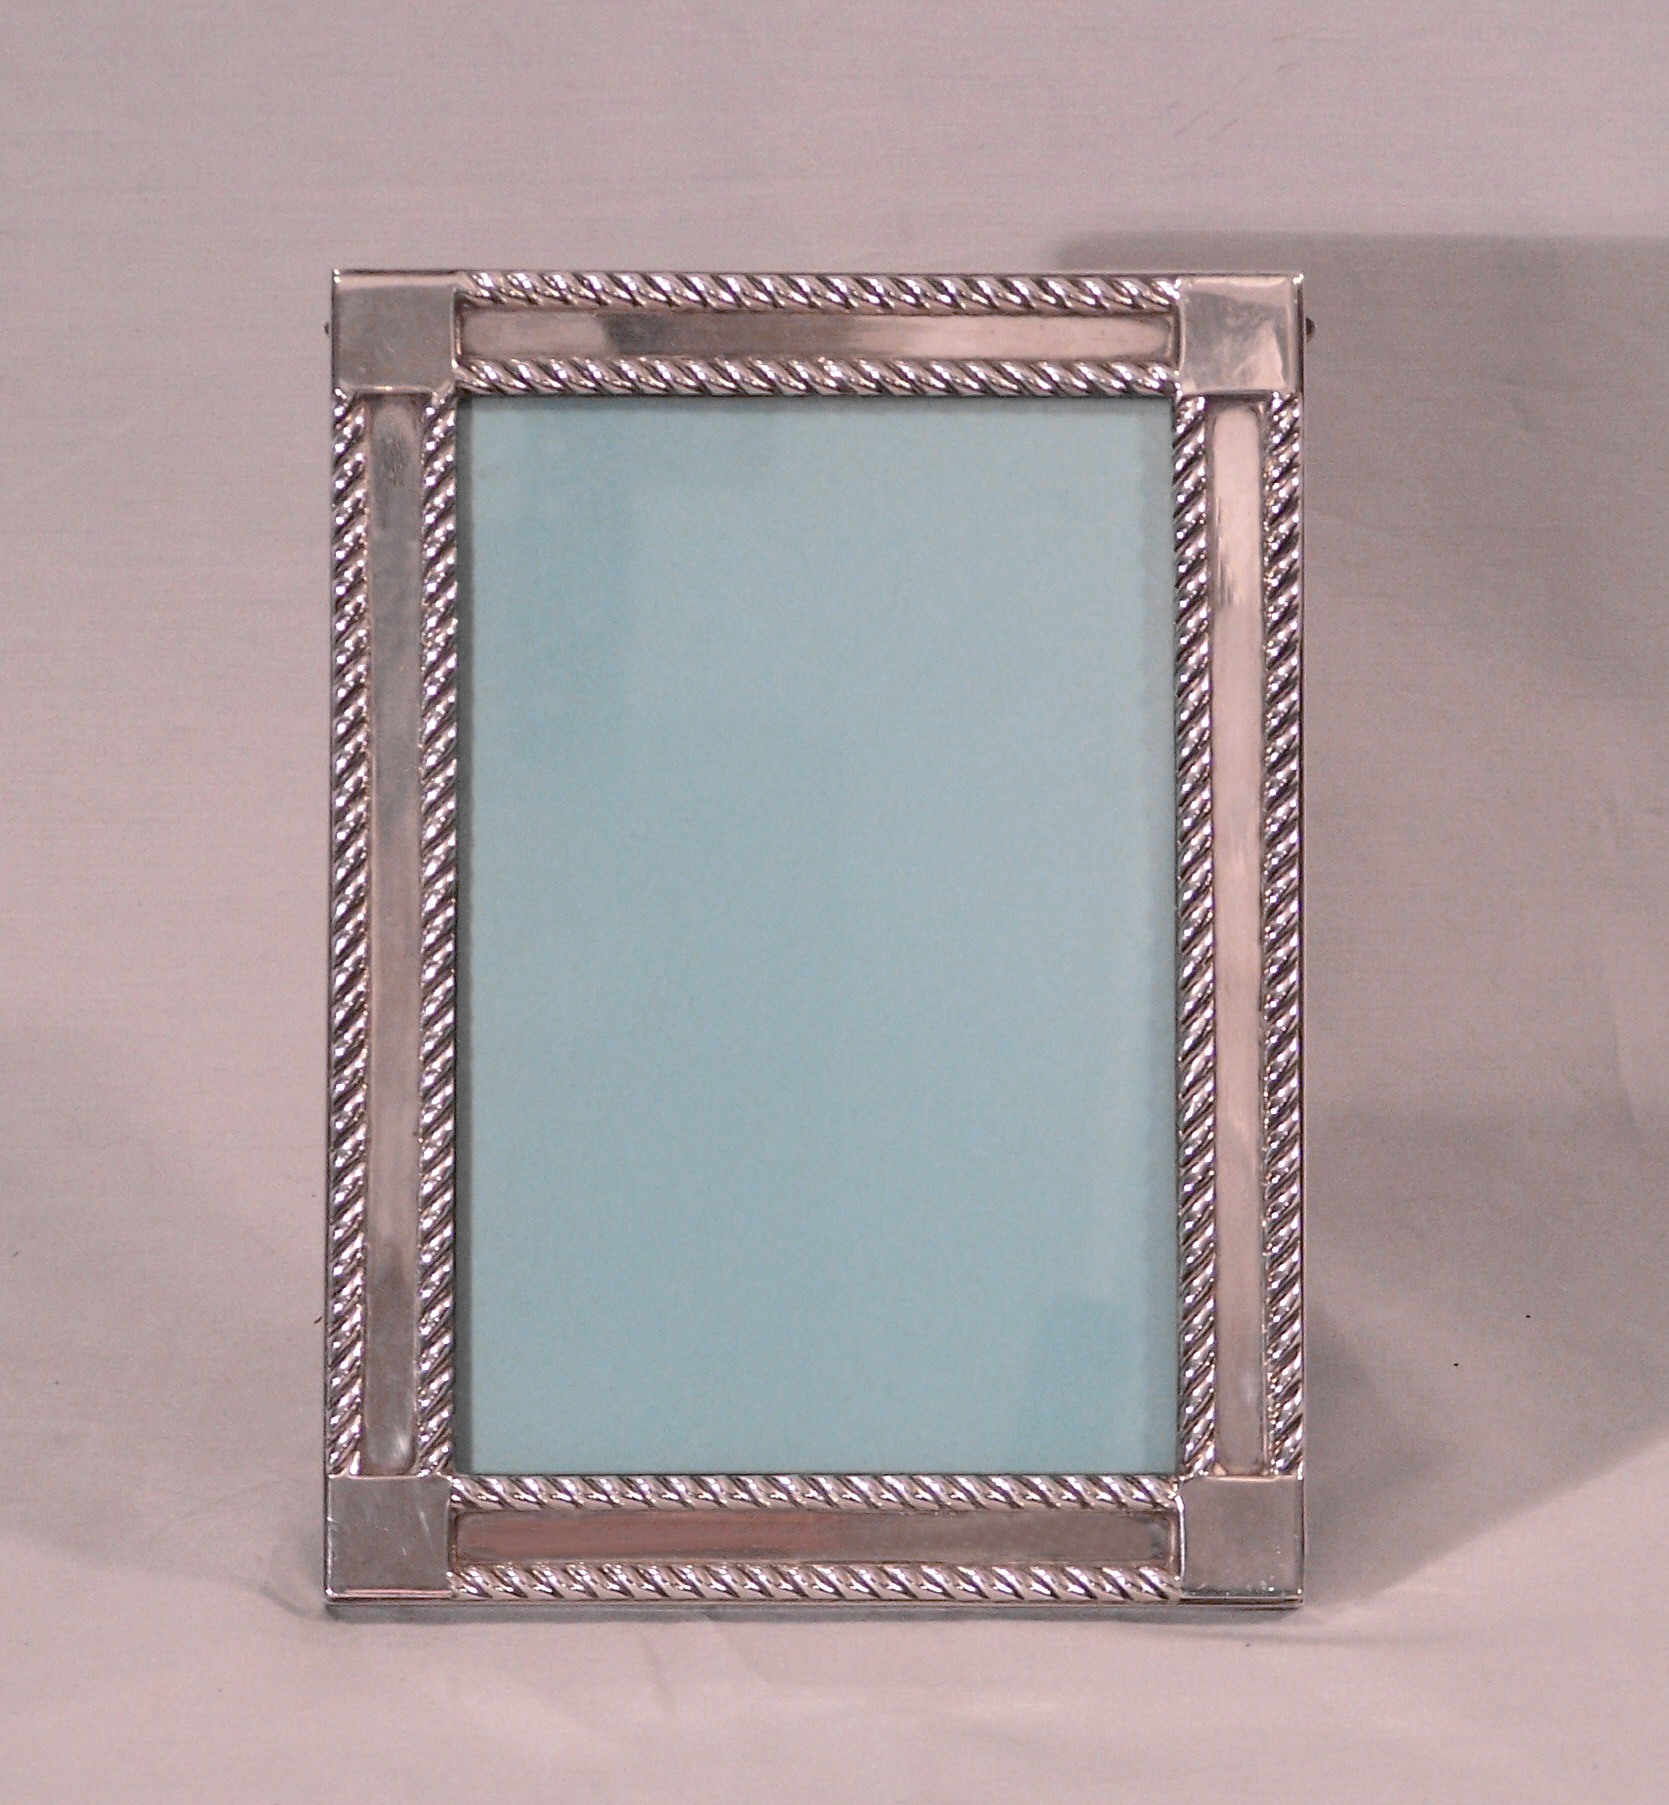 7980 Vintage Tiffany and Co Makers sterling silver picture frame For ...